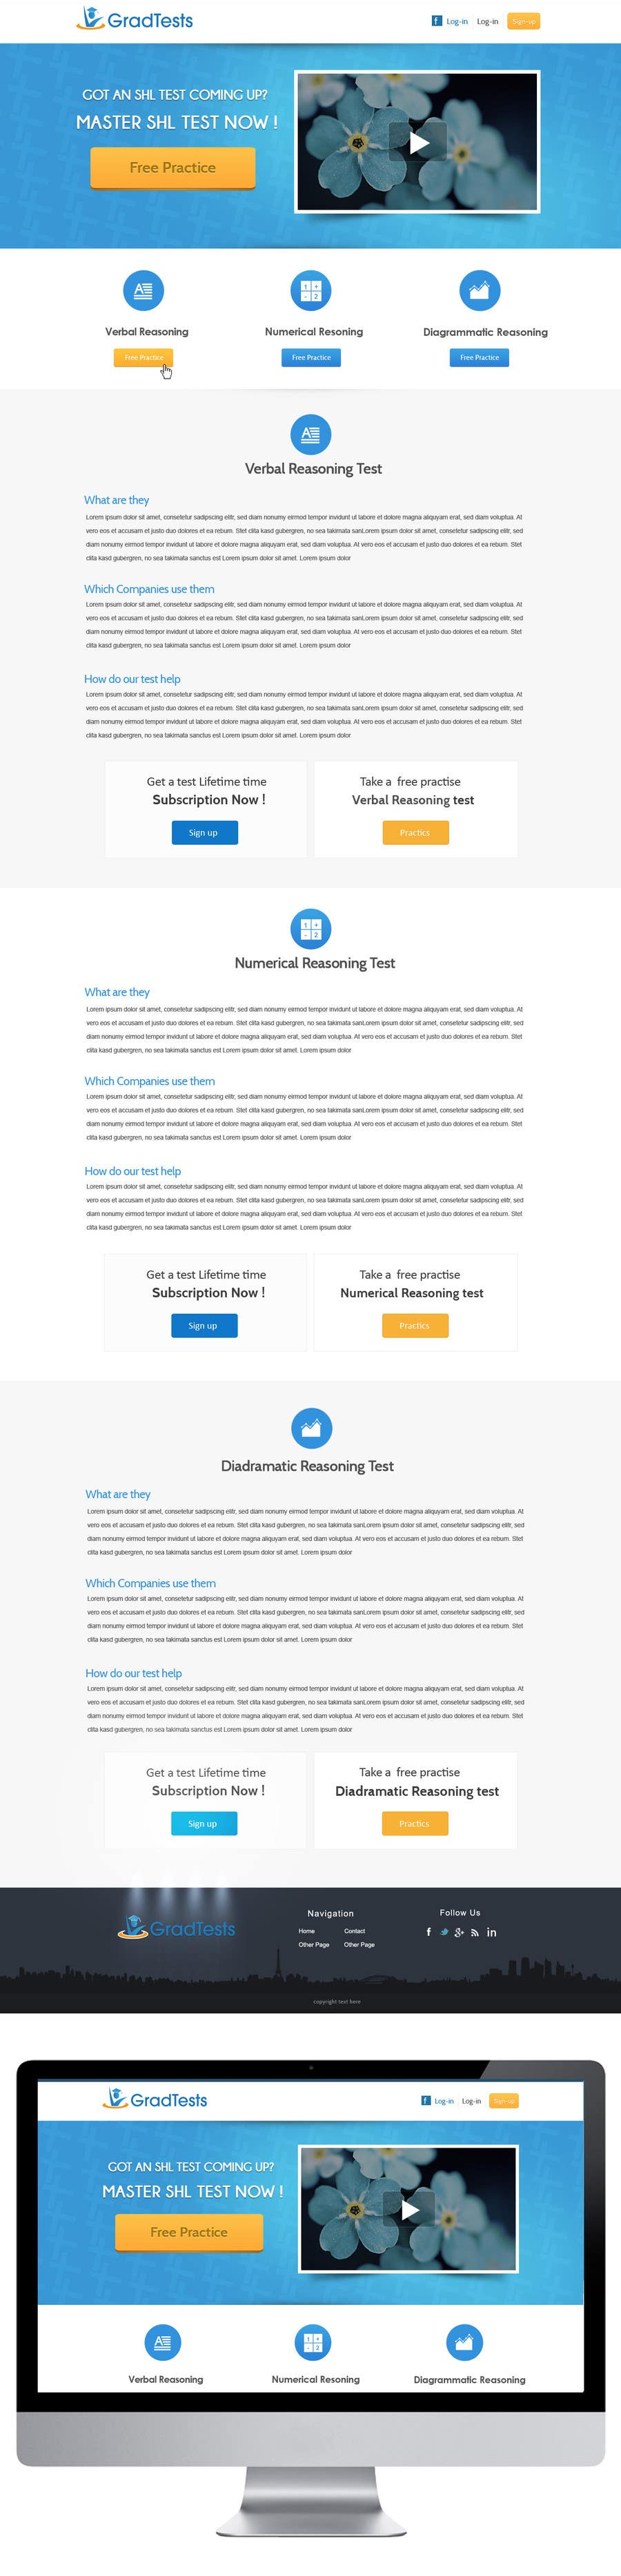 Inscrição nº                                         34                                      do Concurso para                                         Design a Website Mockup for Practice IQ Test Business